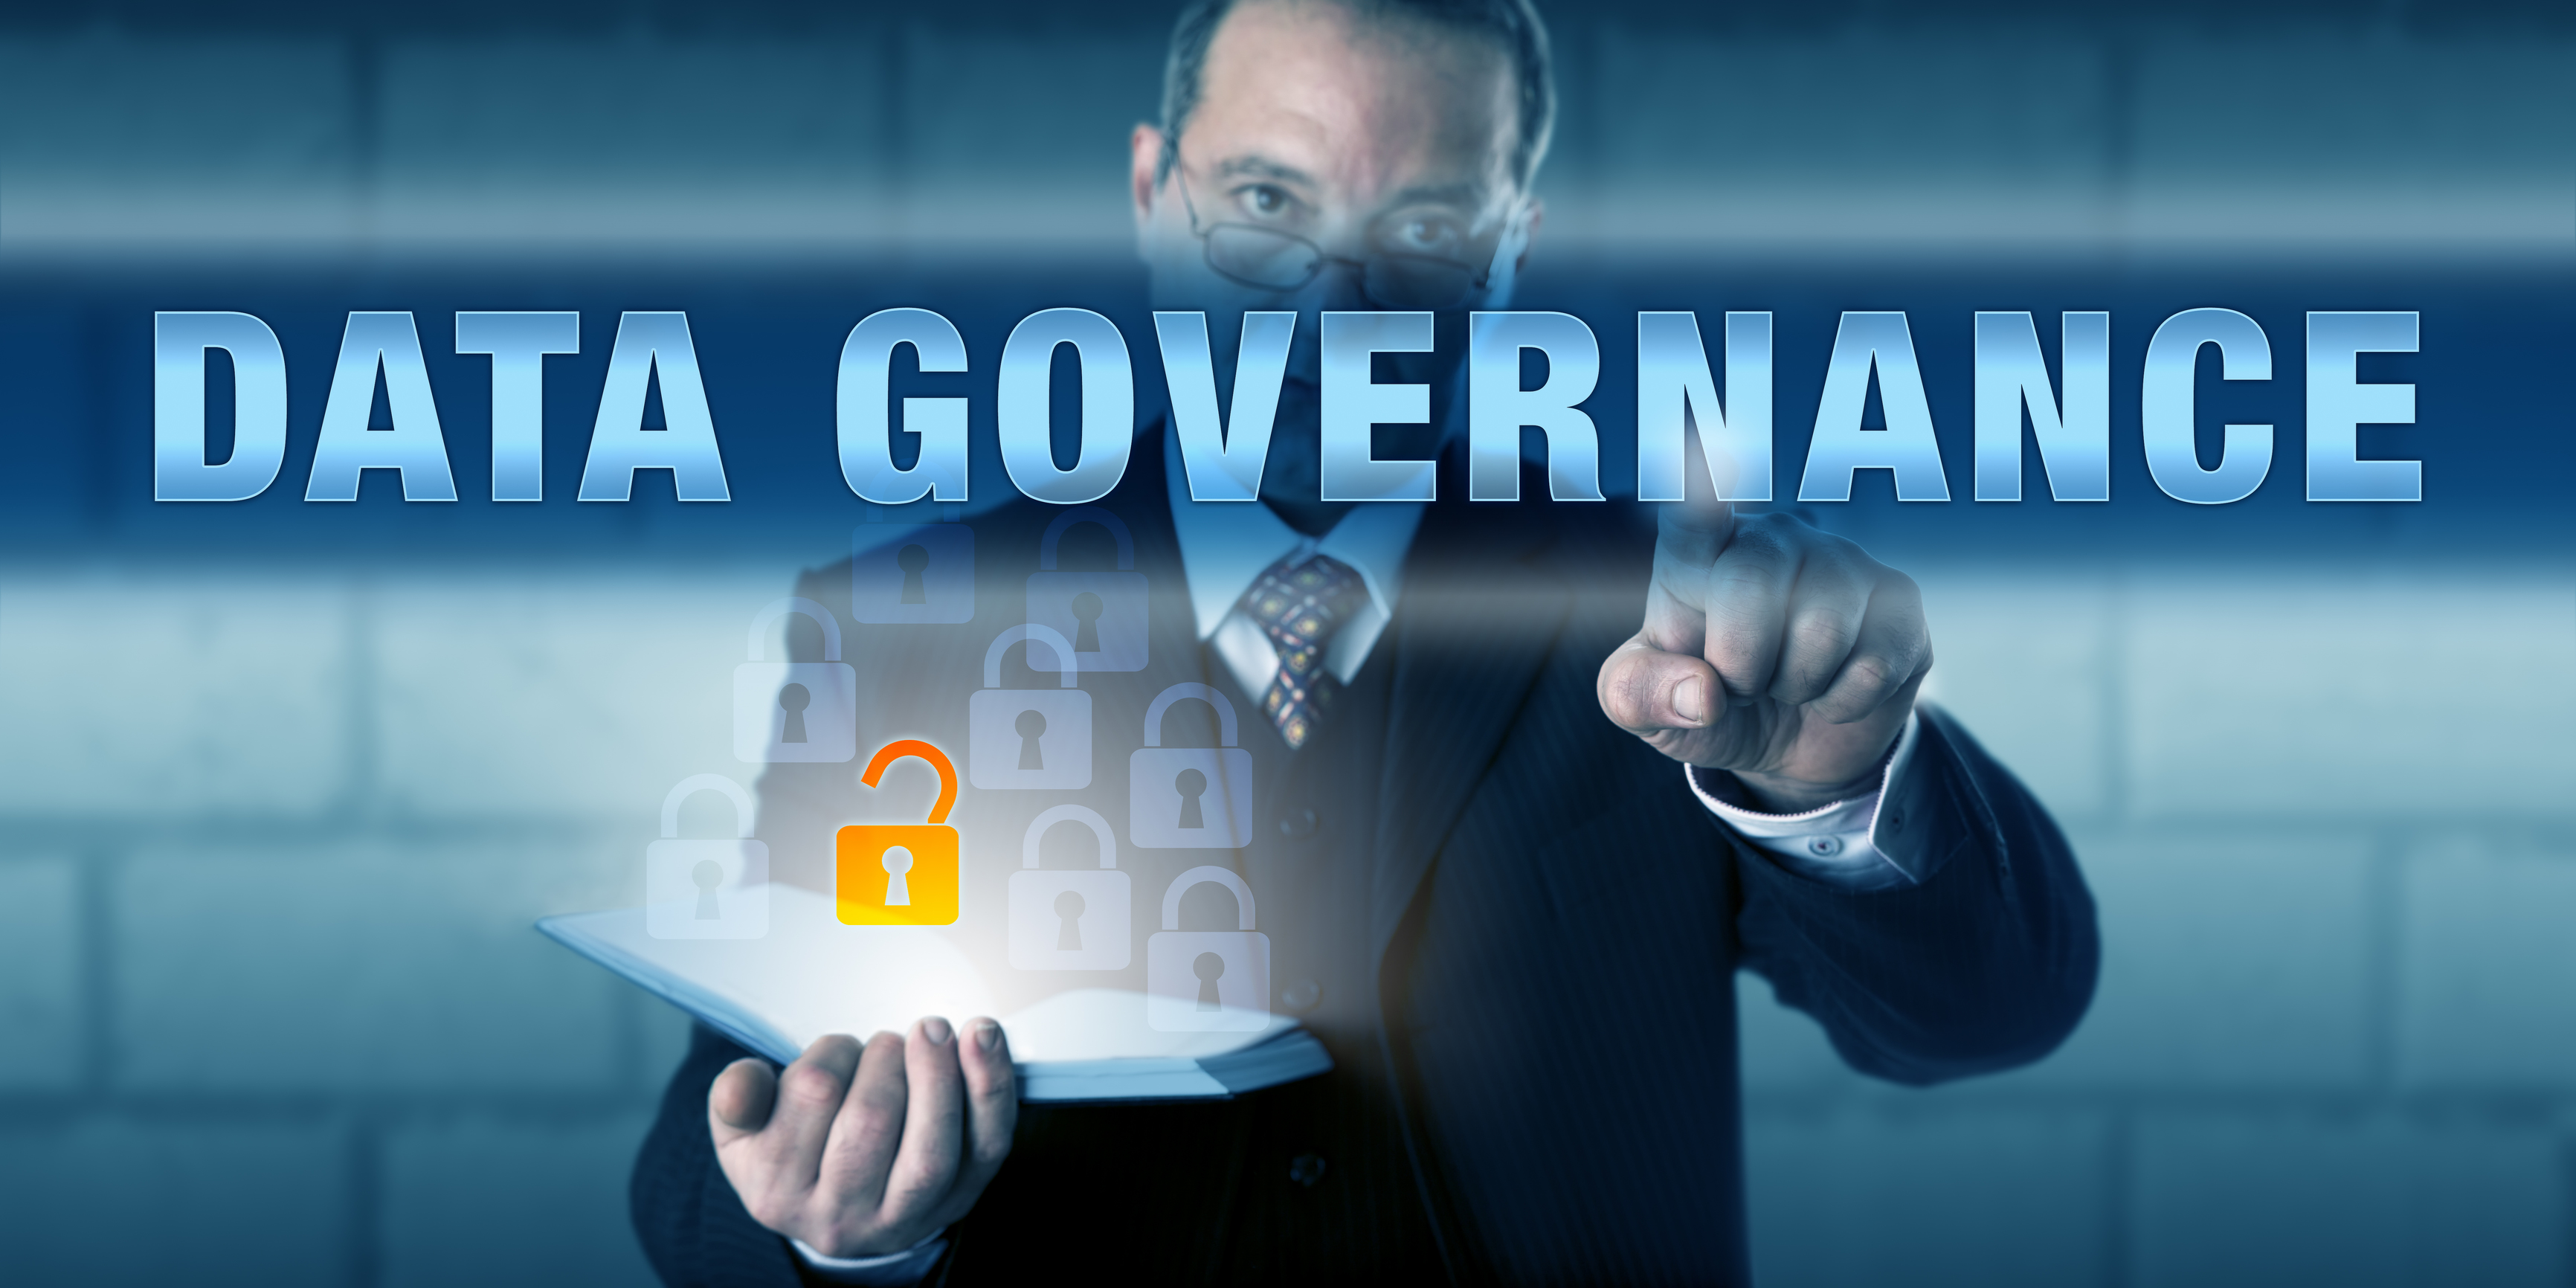 Storage Made Easy Data Governance